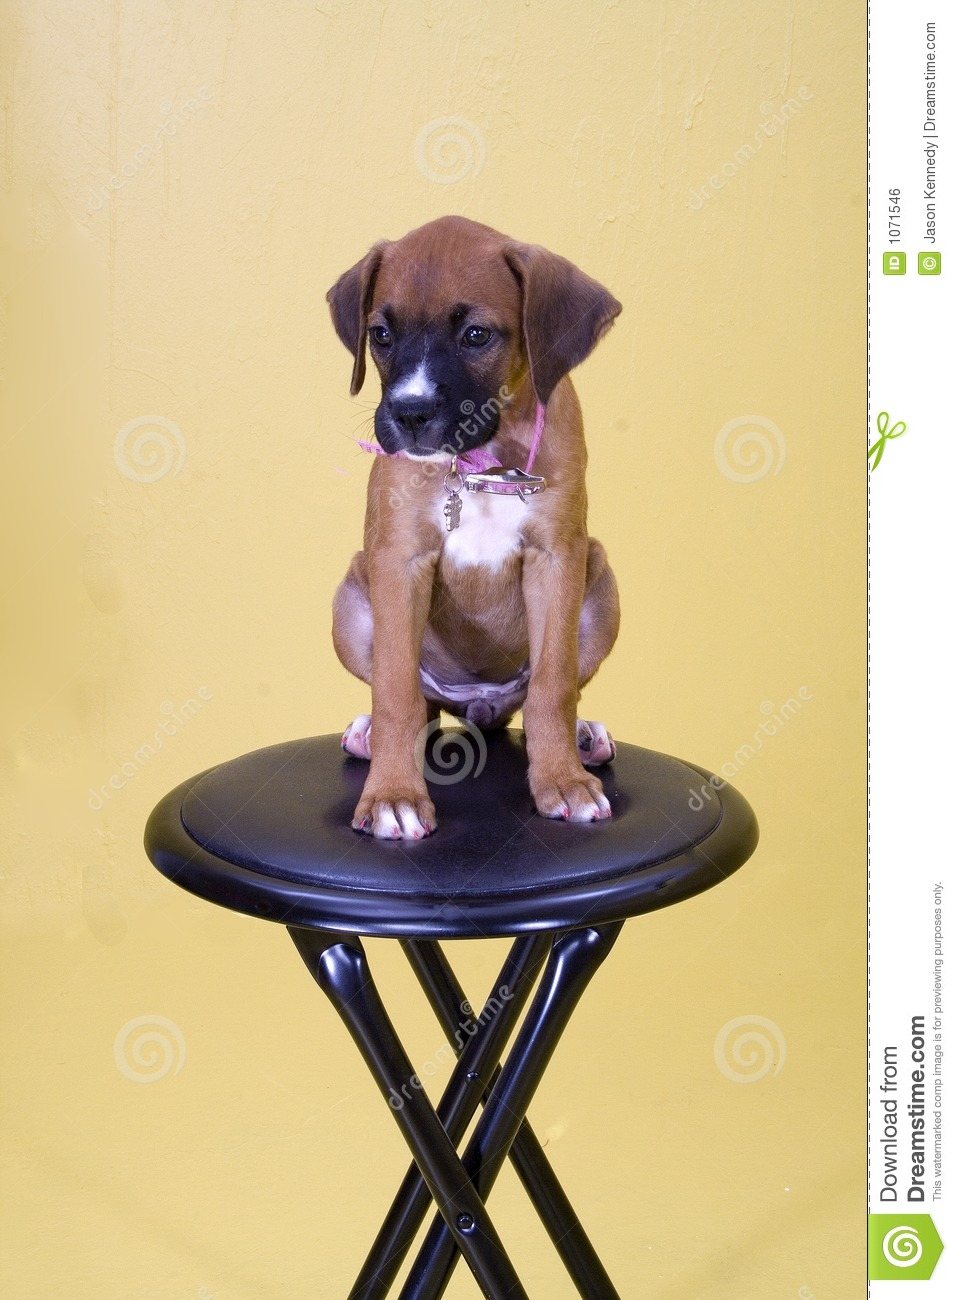 Dog On Stool Royalty Free Stock Image Image 1071546